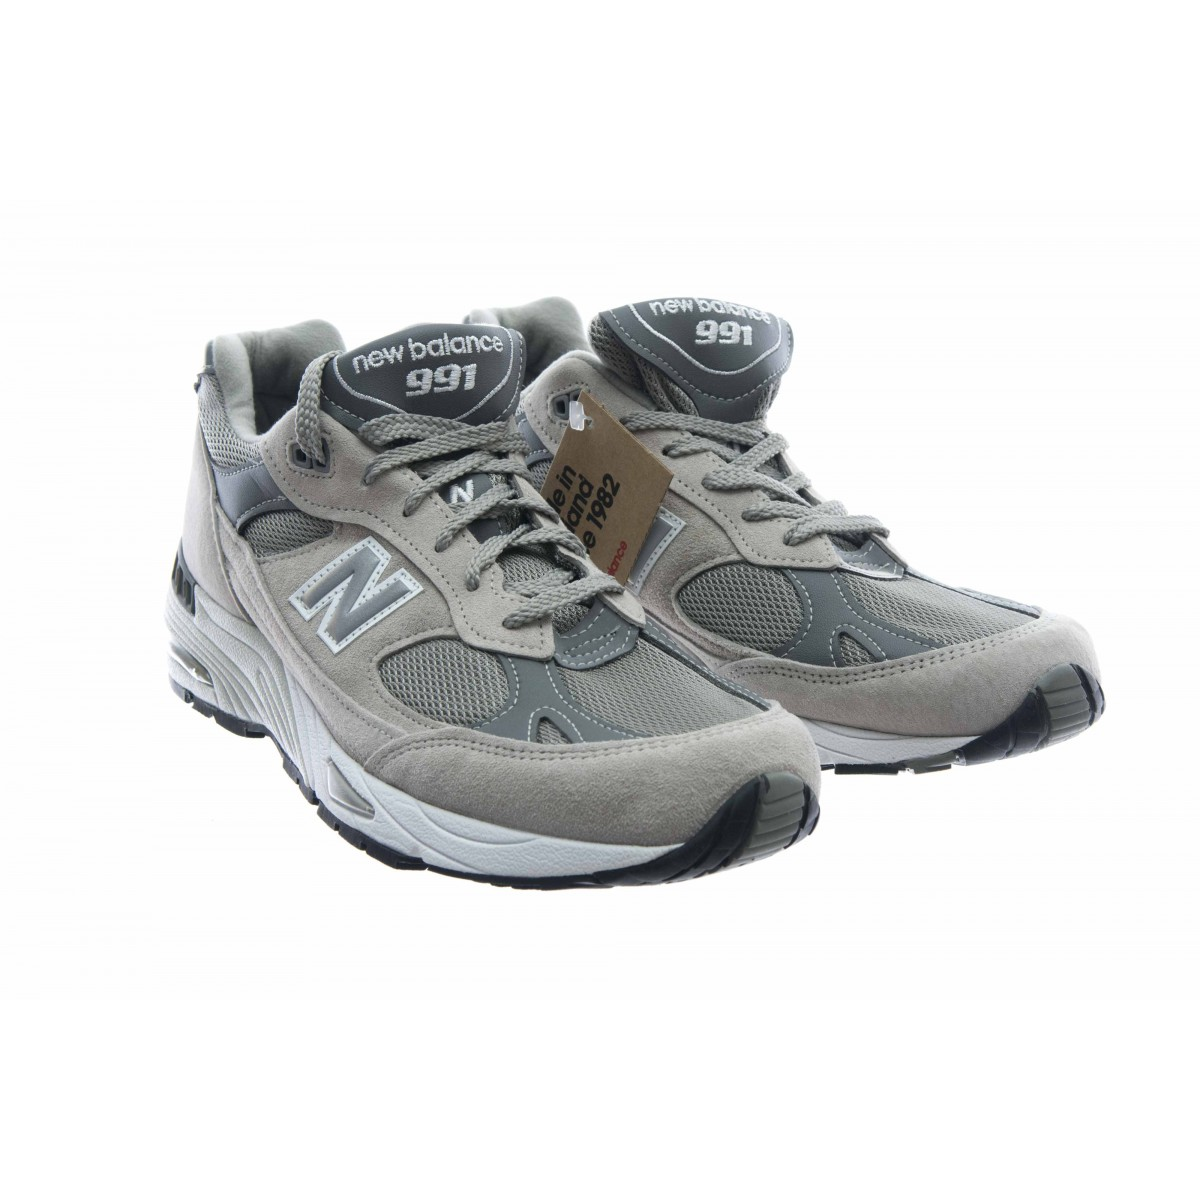 Scarpa - M991 made in uk